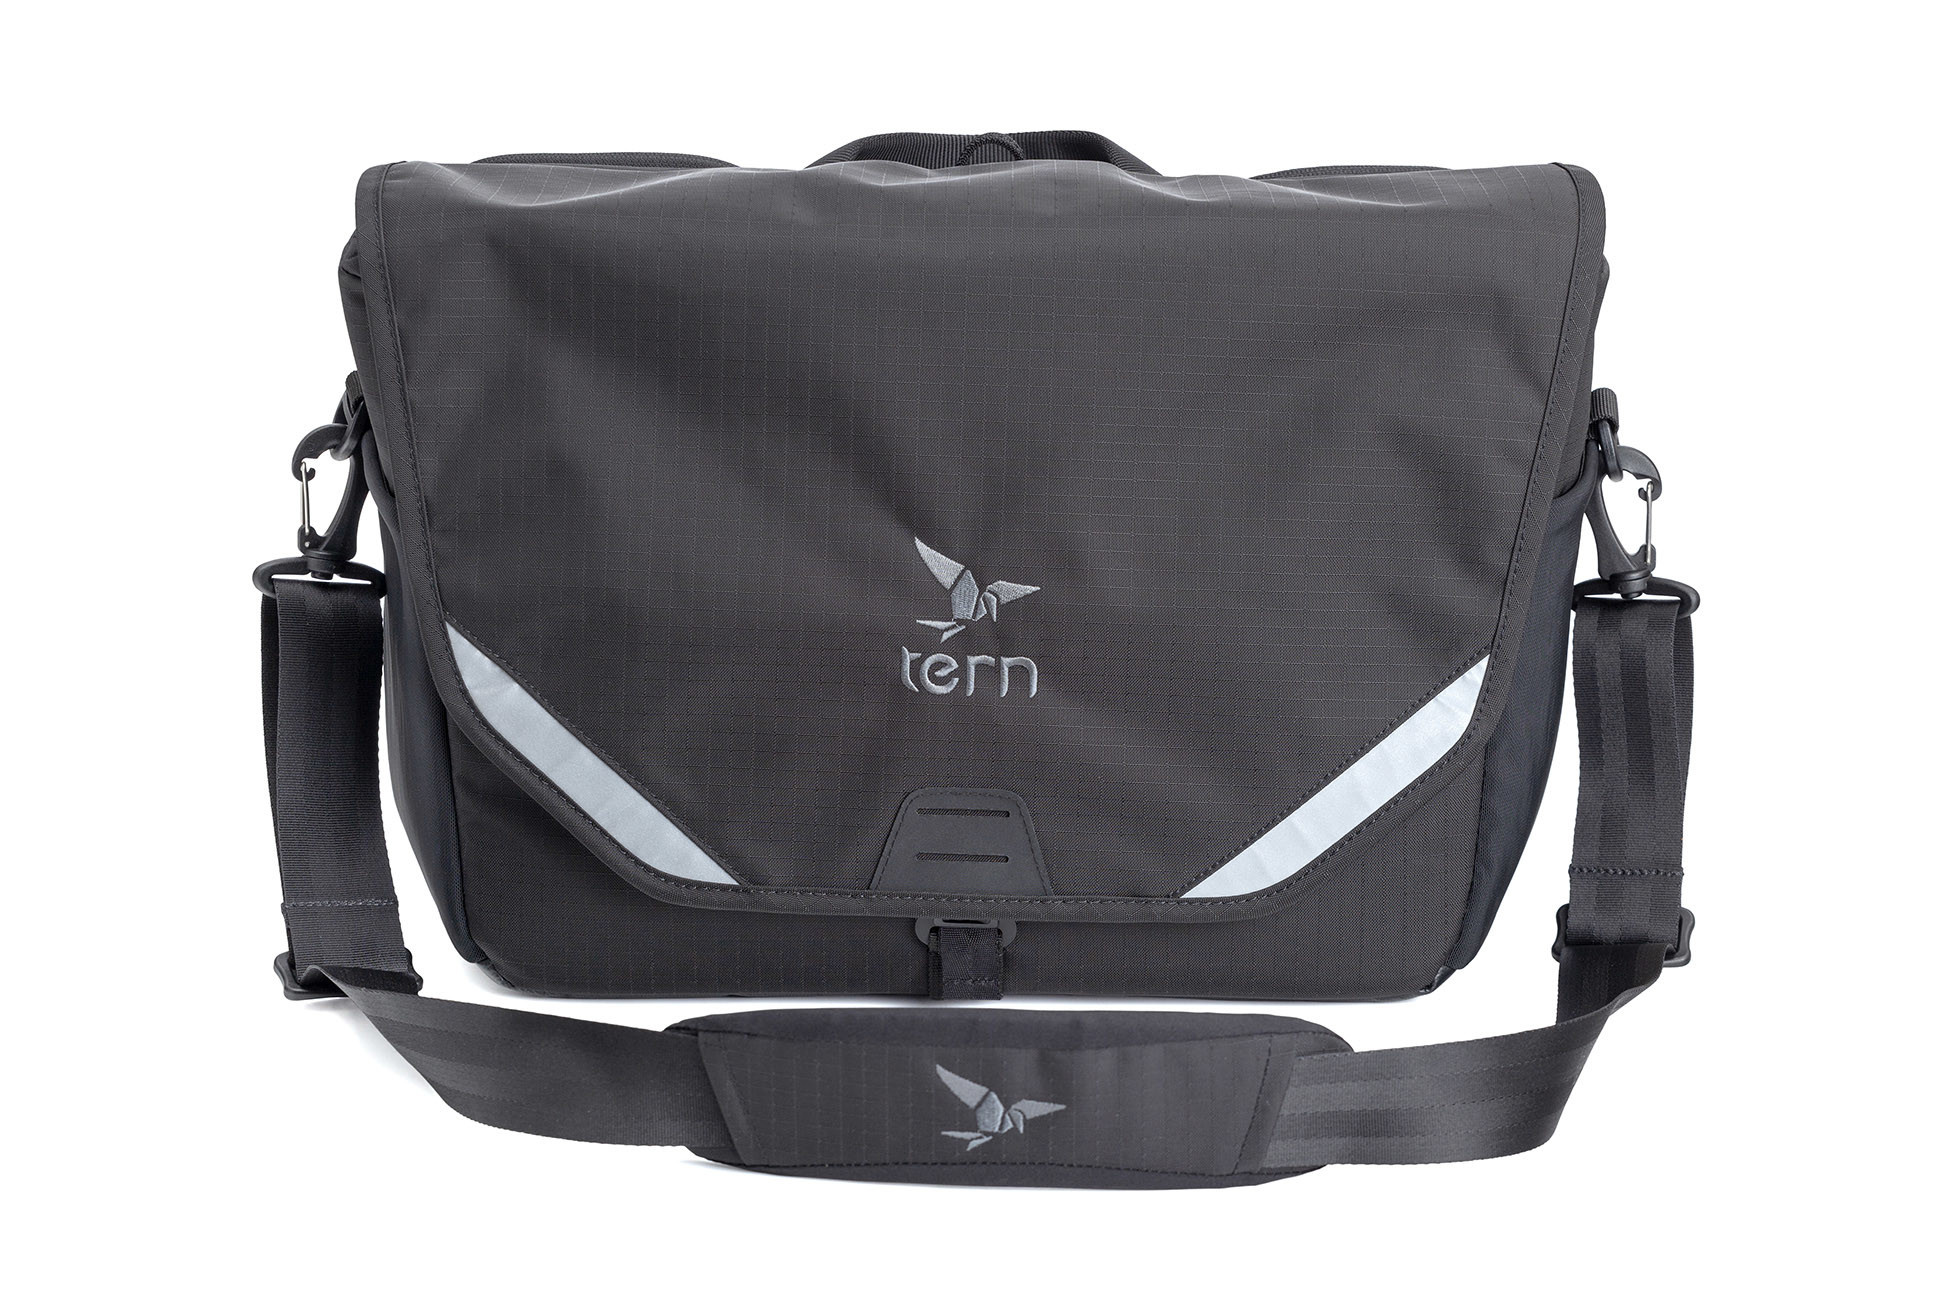 Tern Tern GoTo Bag, Klickfix Mount